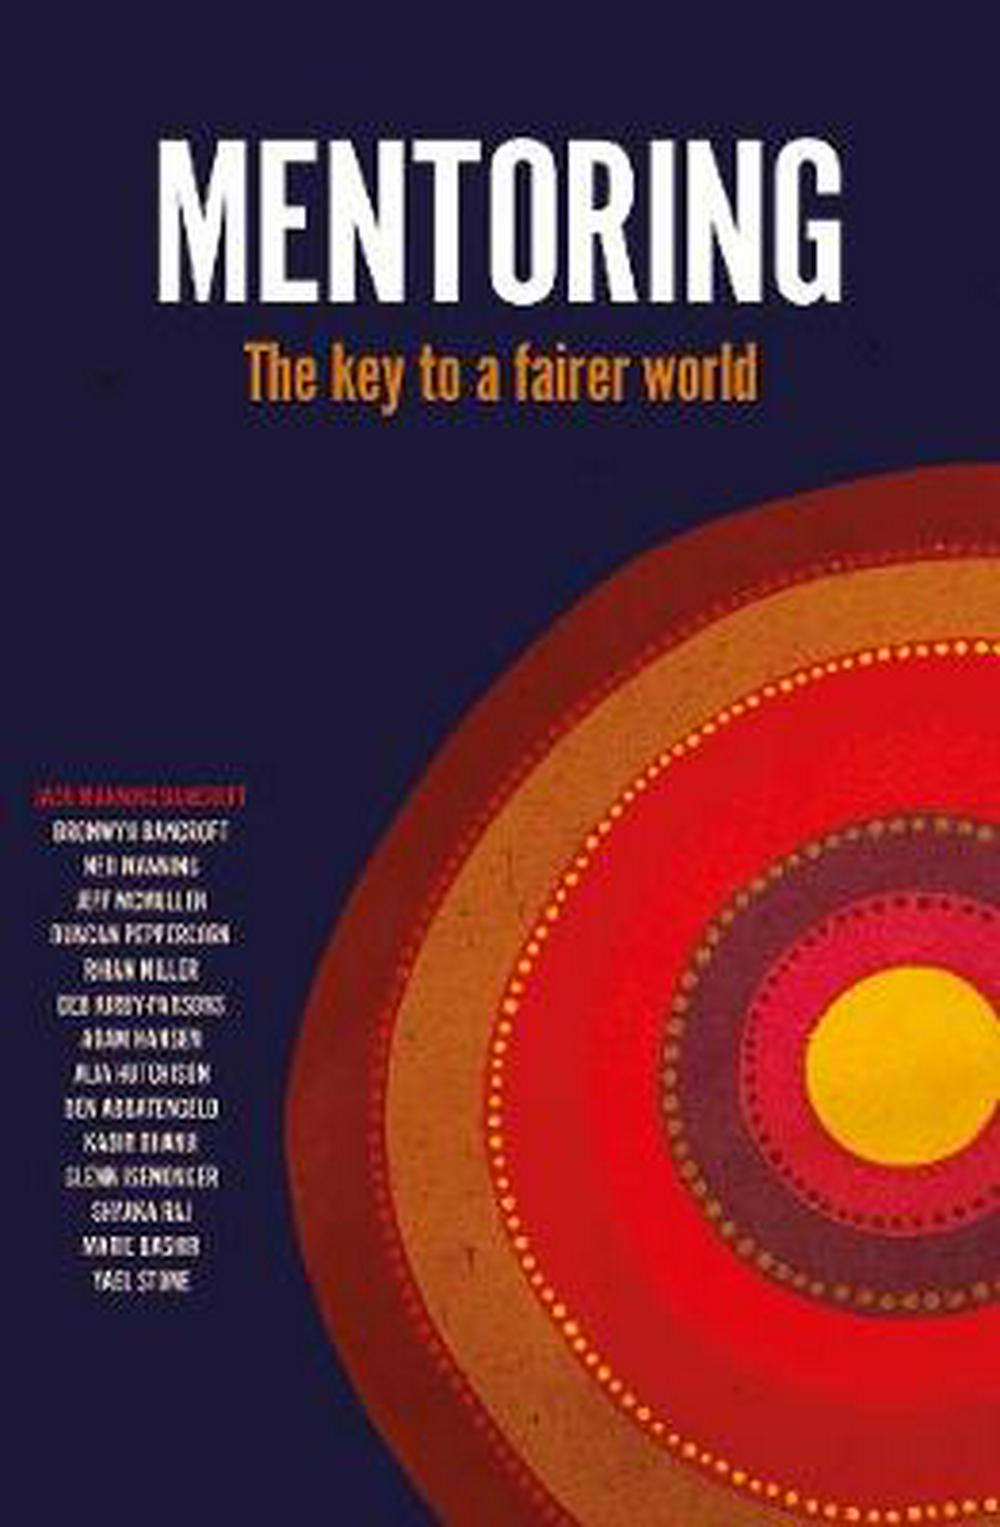 MentoringThe Key to a Fairer World by Jack Manning Bancroft, ISBN: 9781743793534